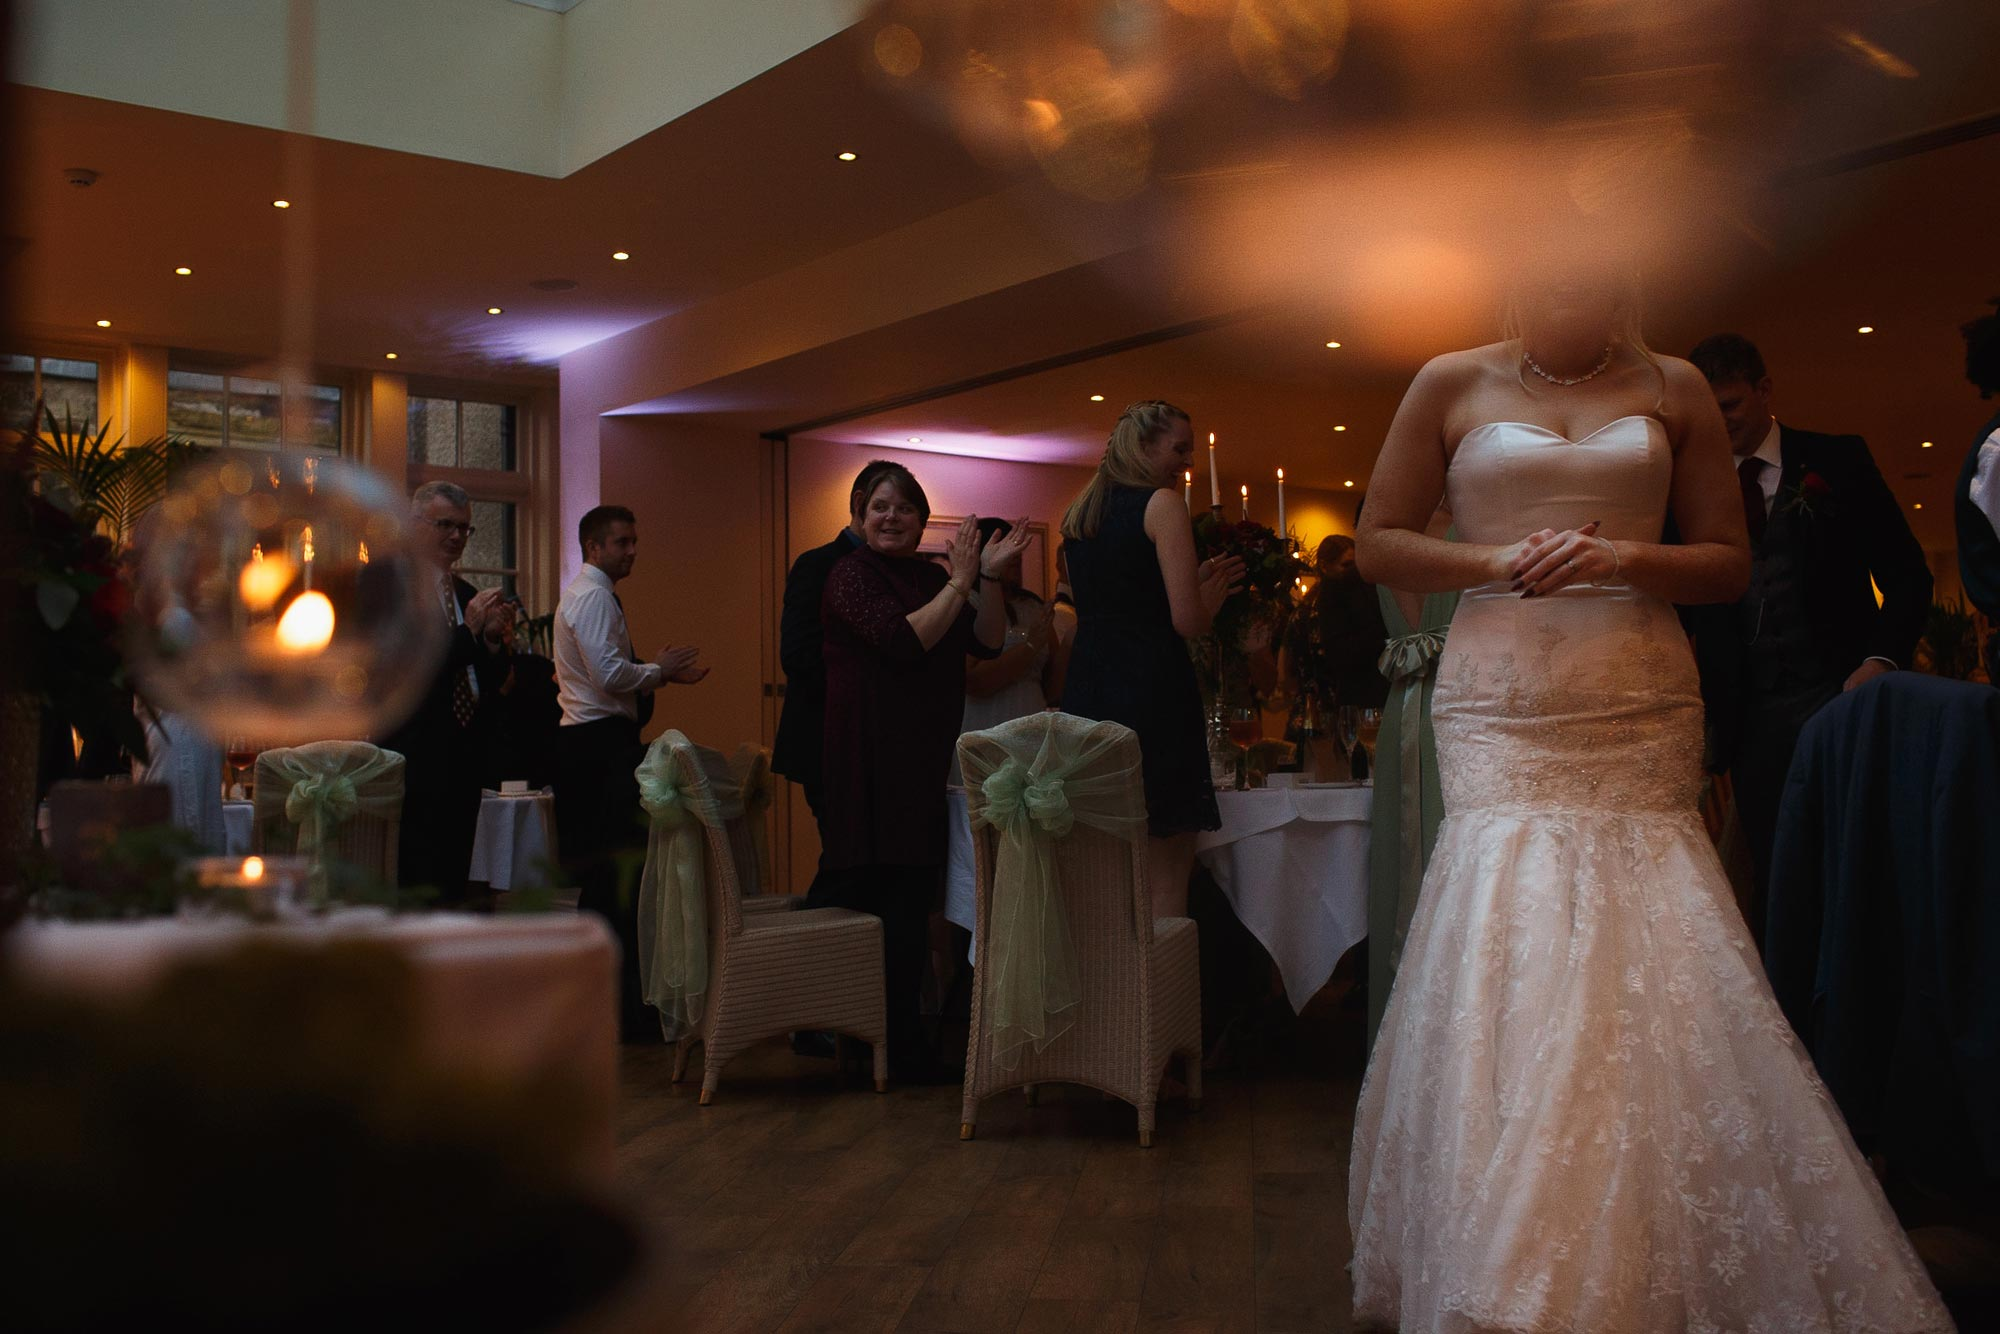 Abstract wedding photograph of the bride and groom walking into their wedding reception at Mitton Hall